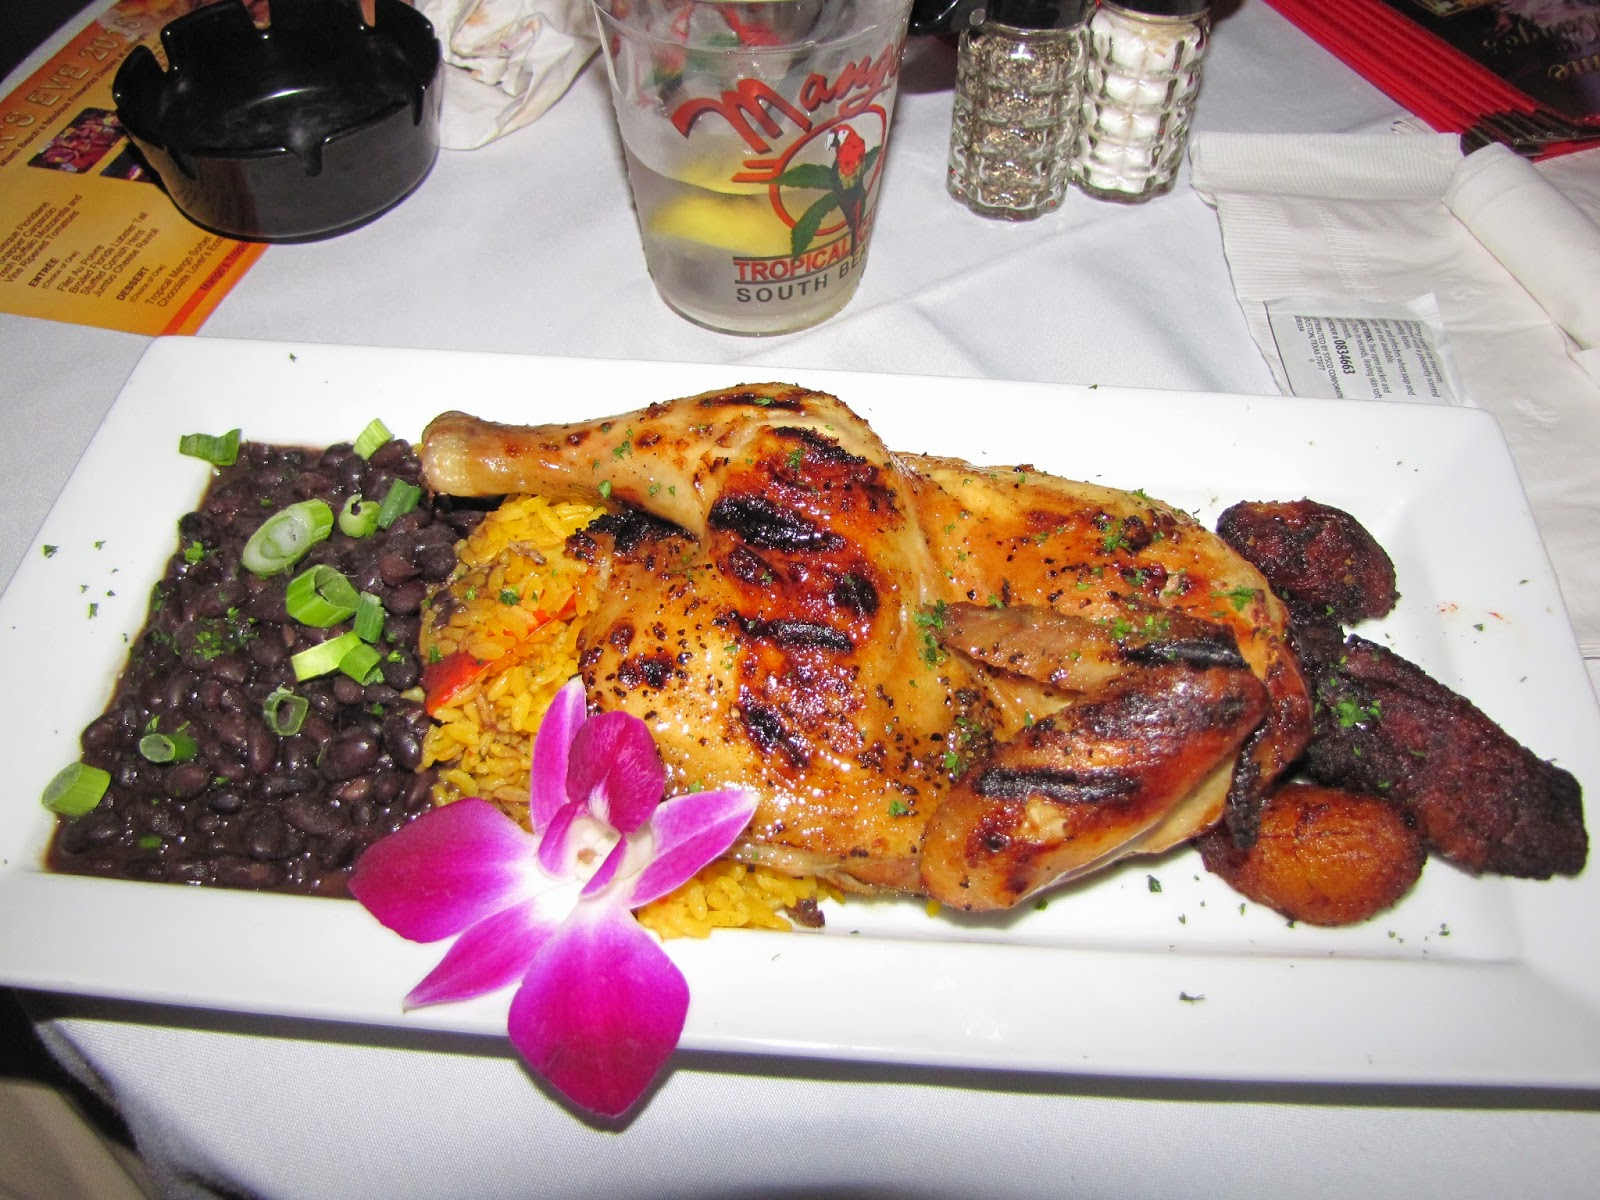 Roasted Margarita Chicken from Mango's Tropical Cafe in Miami, Florida